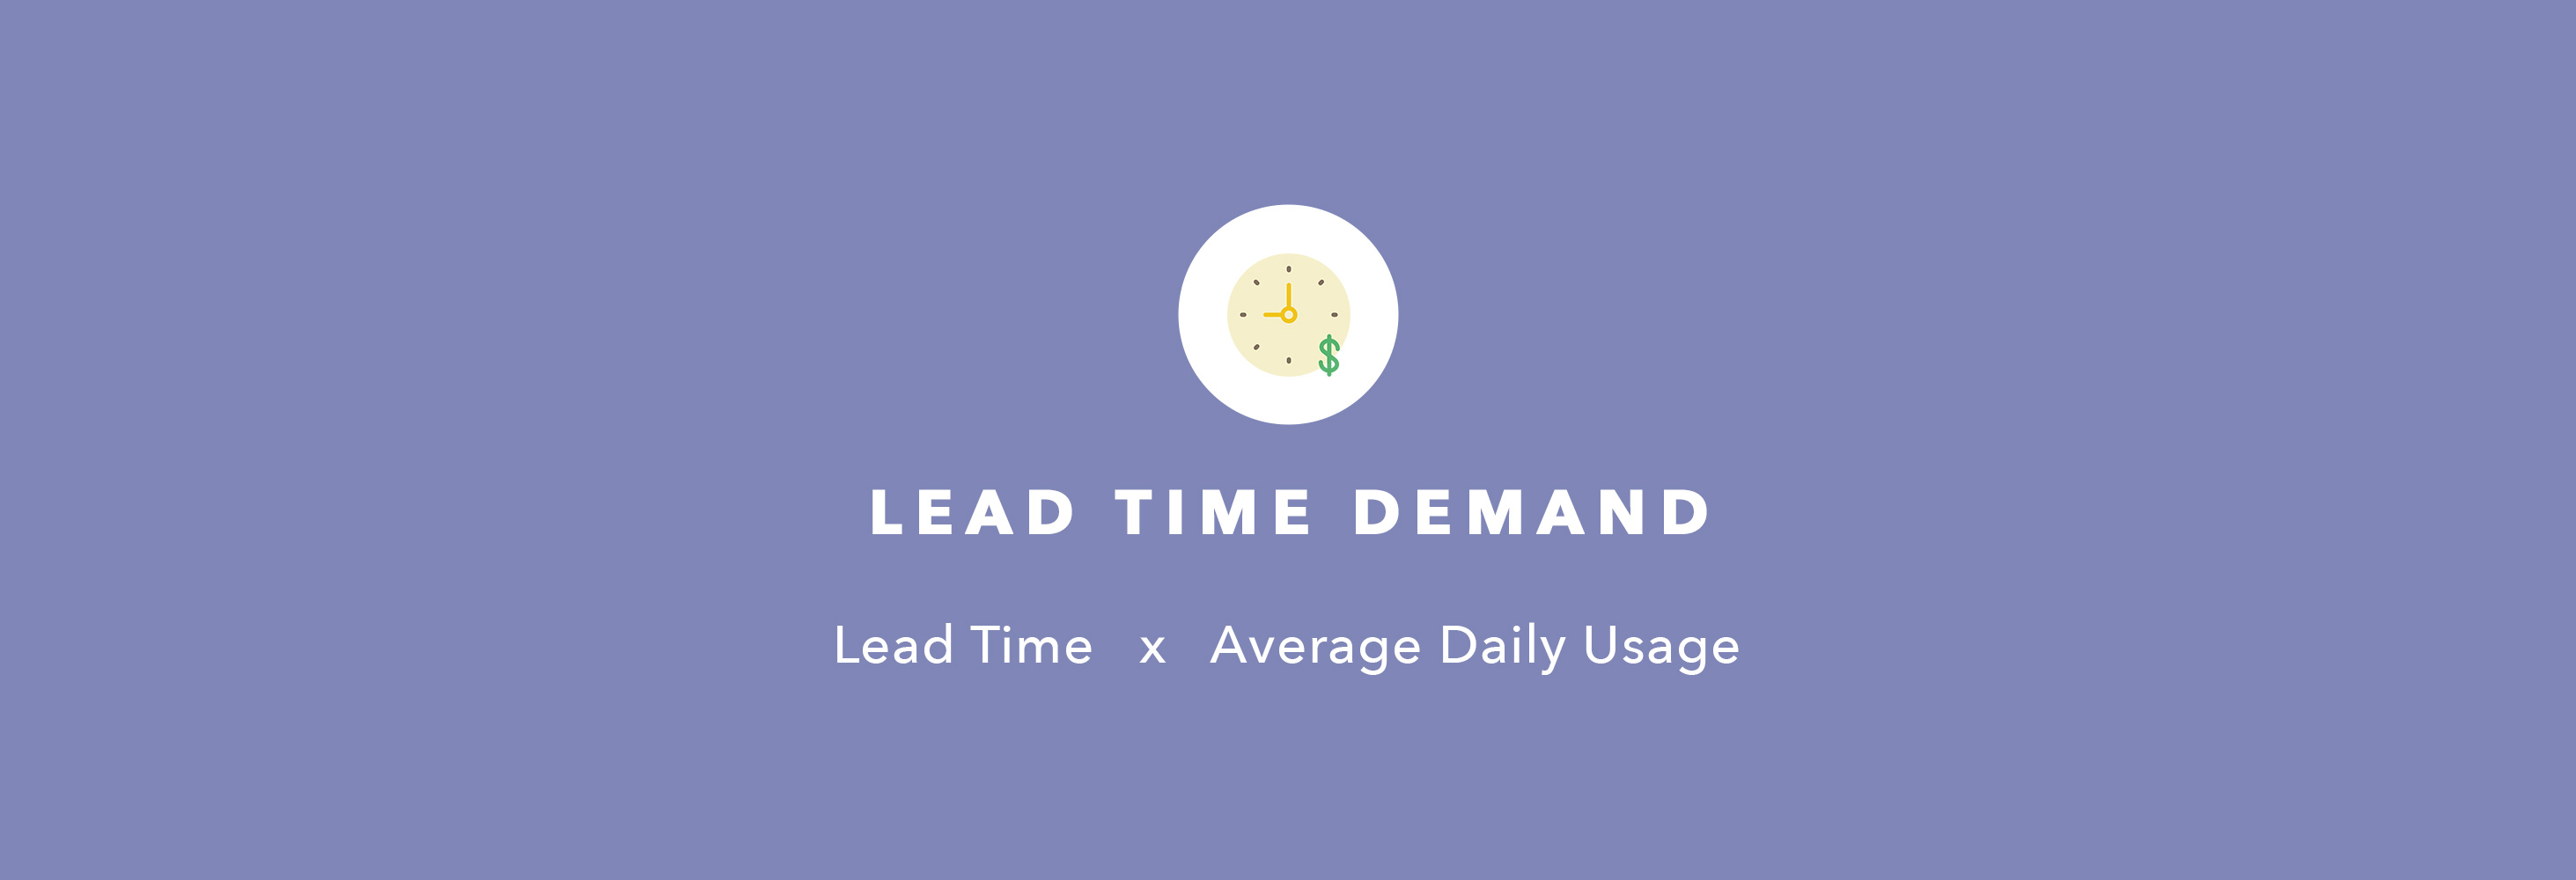 lead time demand